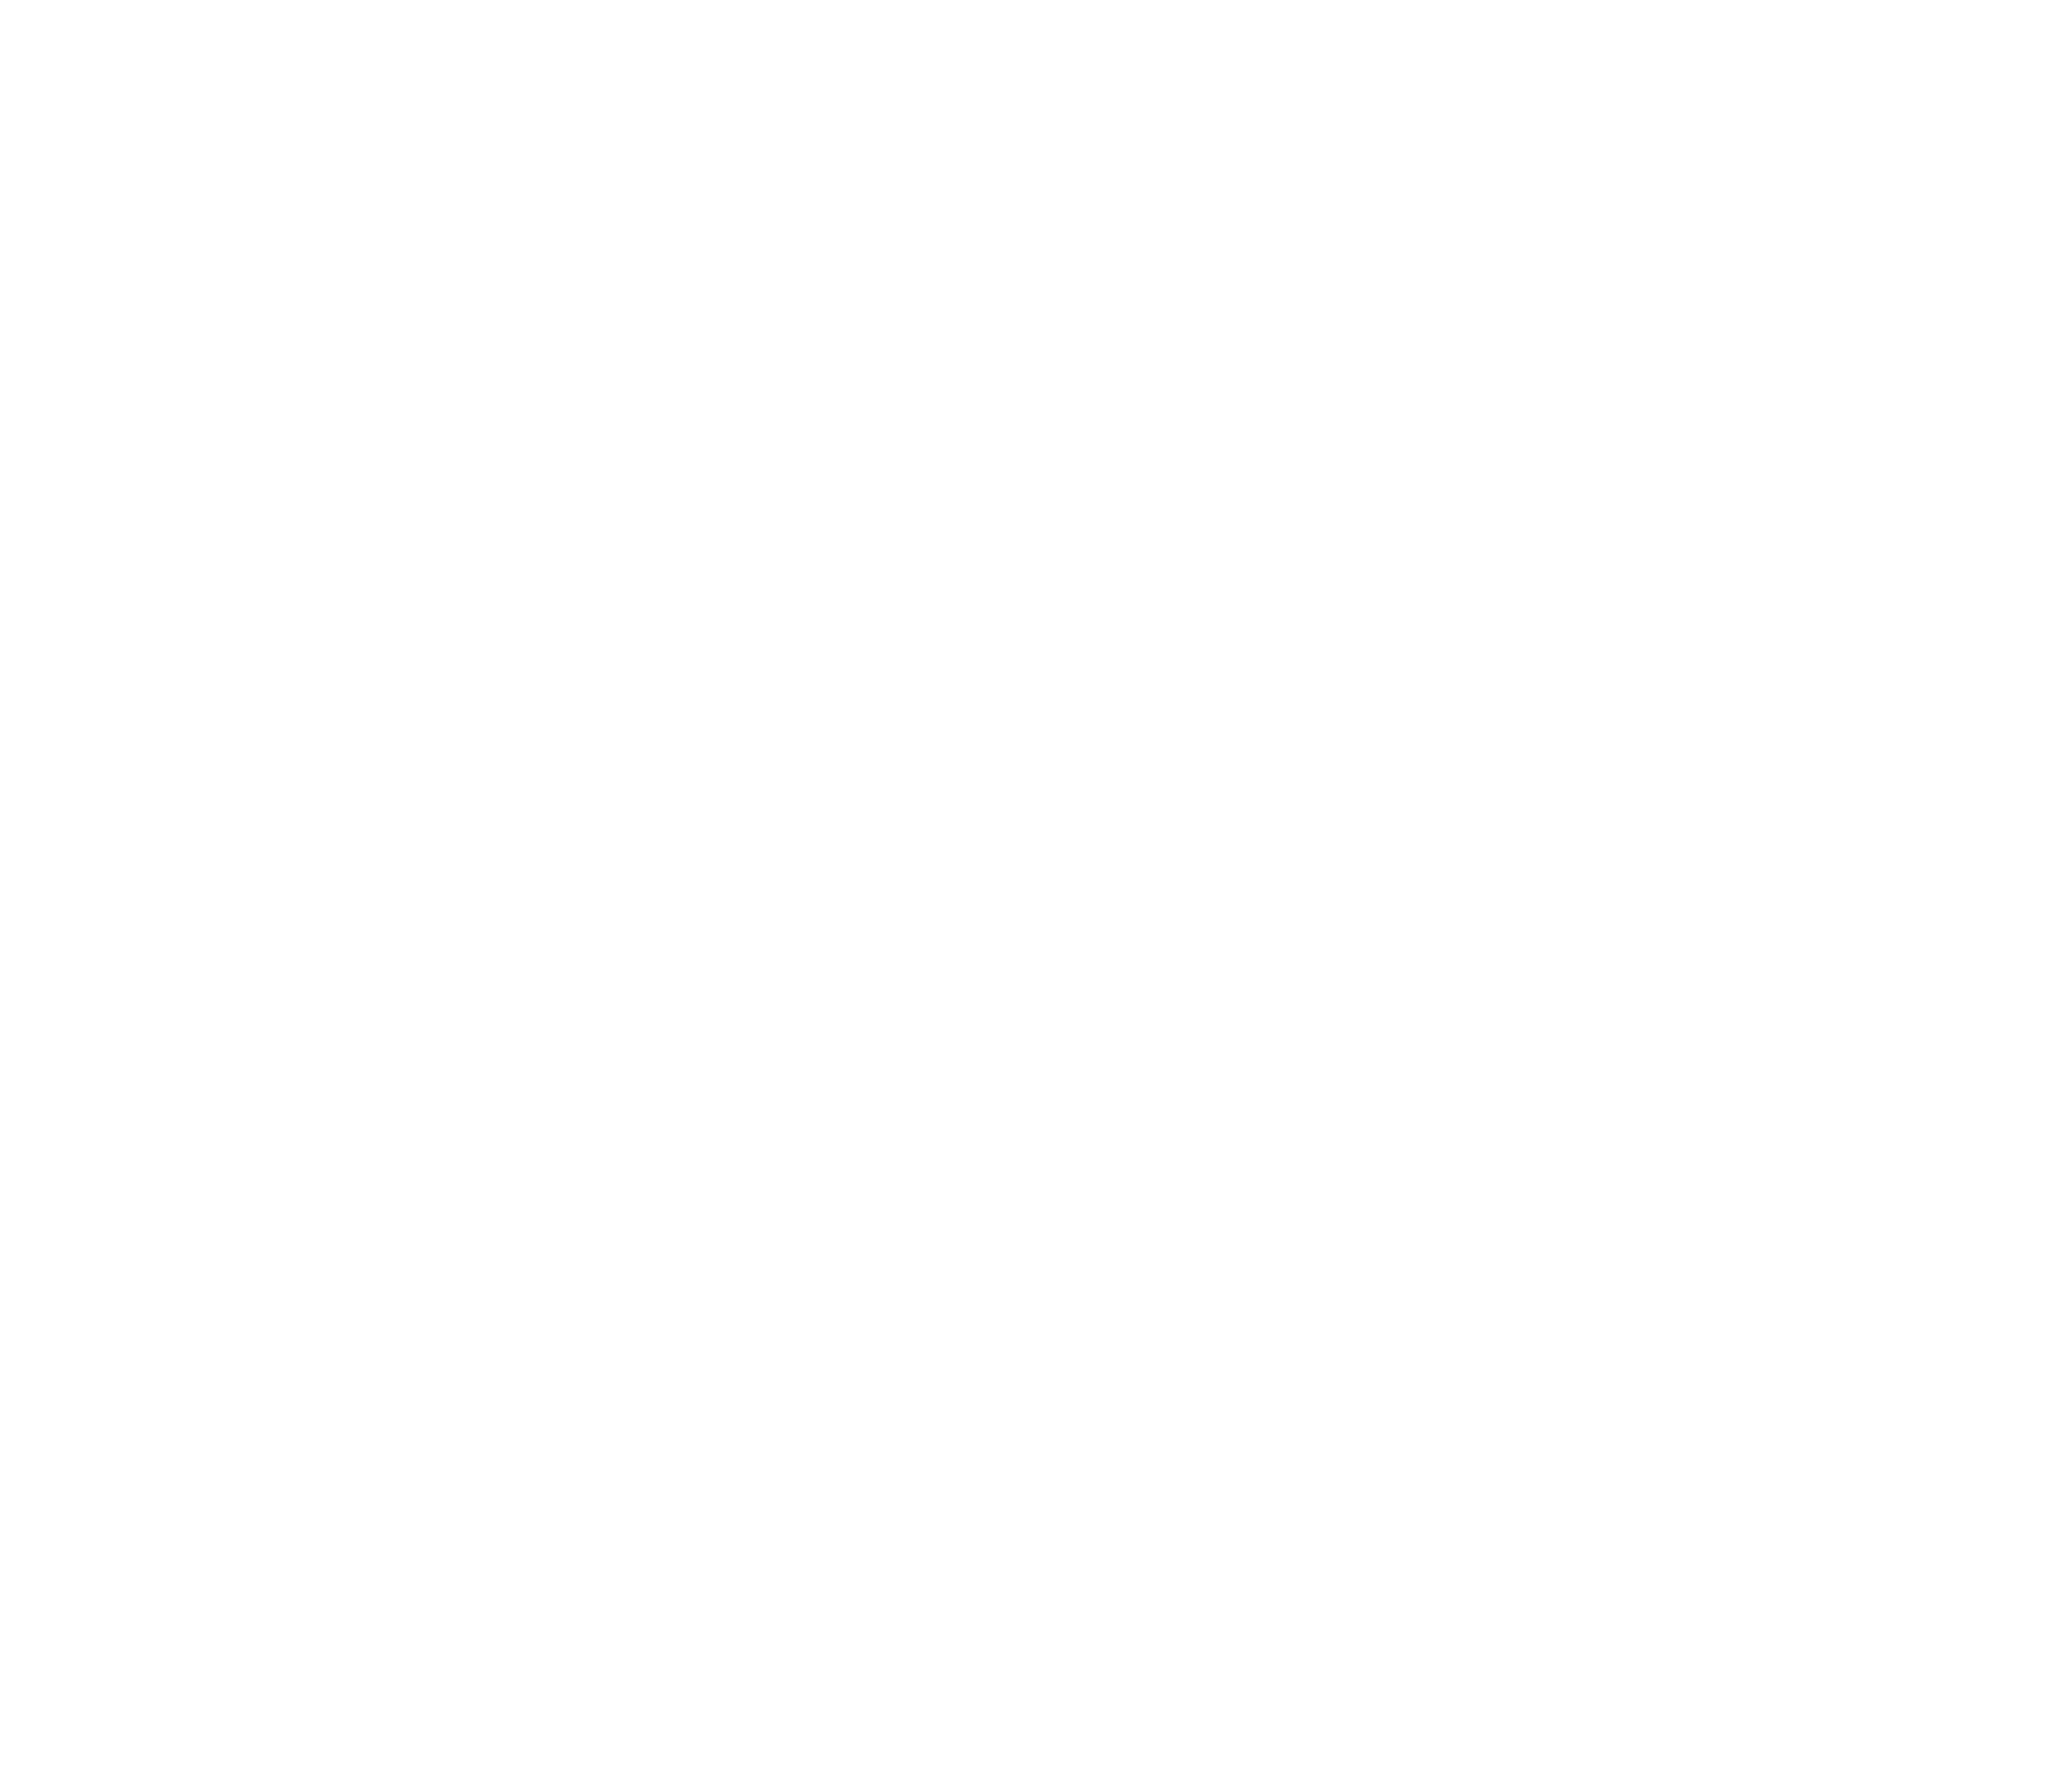 Flat white snowflake with hollow circular center by gabe